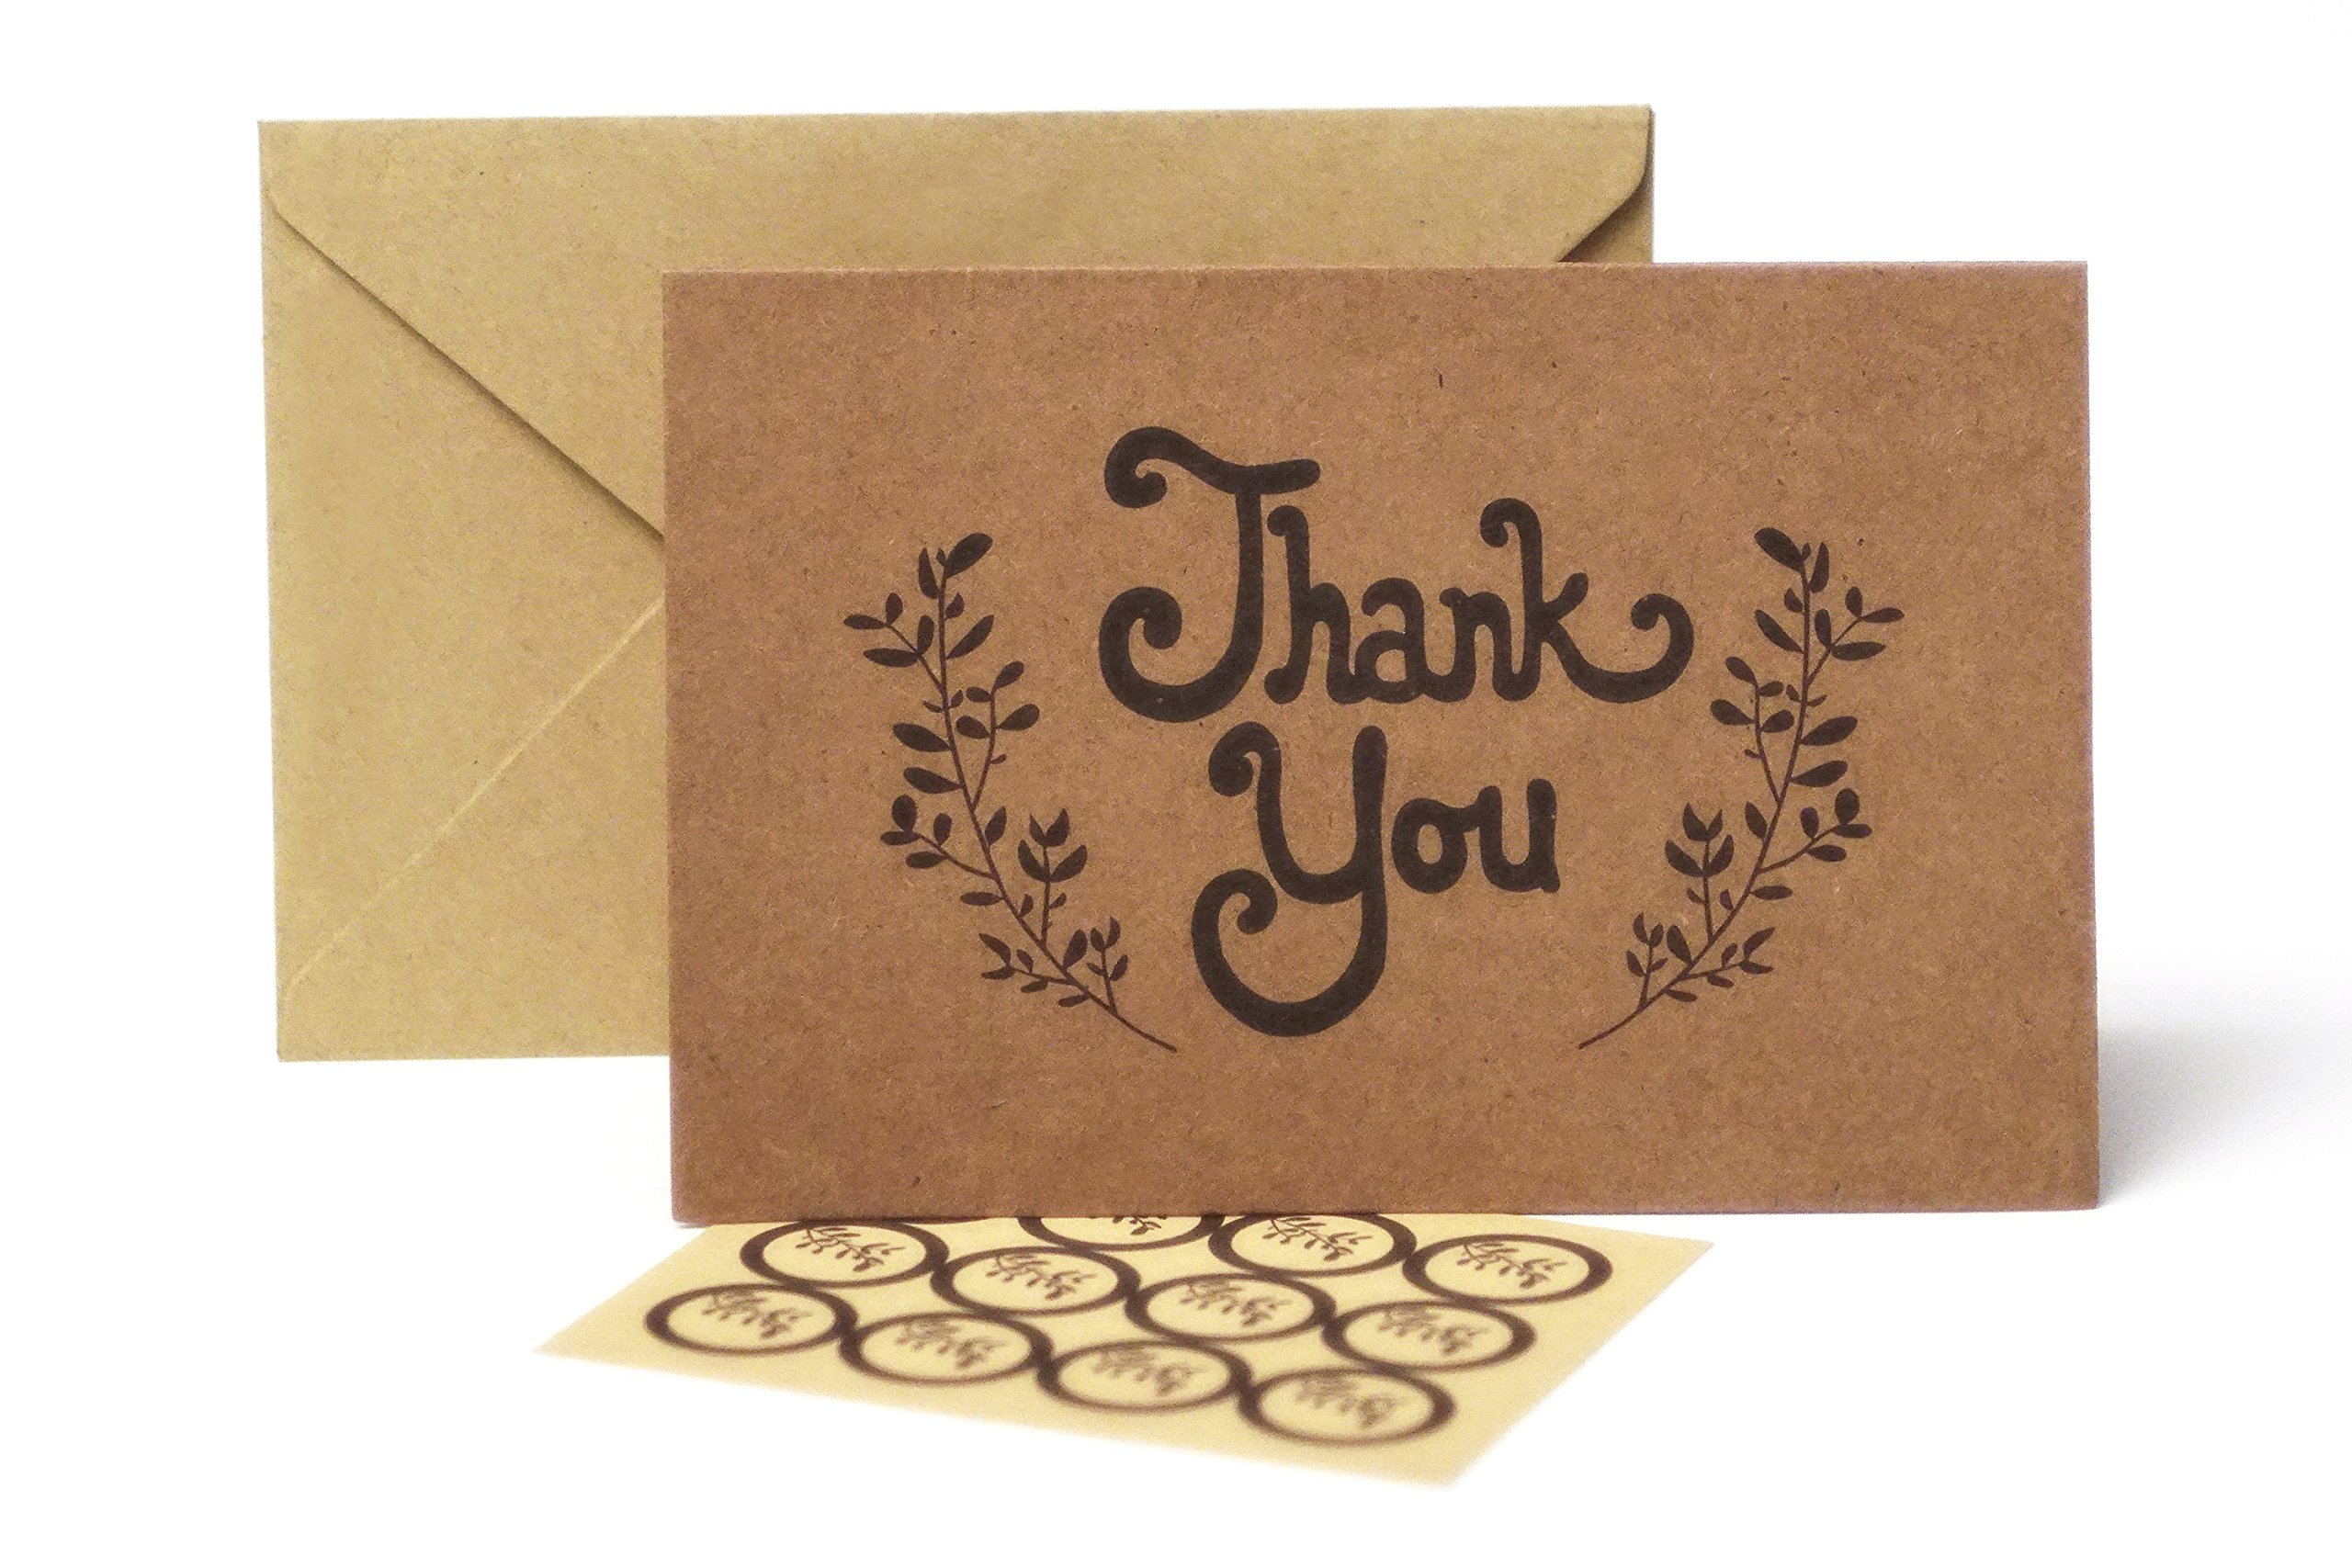 Thank You Cards-100 Bulk Pack with Envelopes, Plus 108 Stickers, Kraft Paper and Rustic Design, Blank on Inside, 4X 6 Size, Ideal for Weddings, Baby Showers, Graduations, etc.